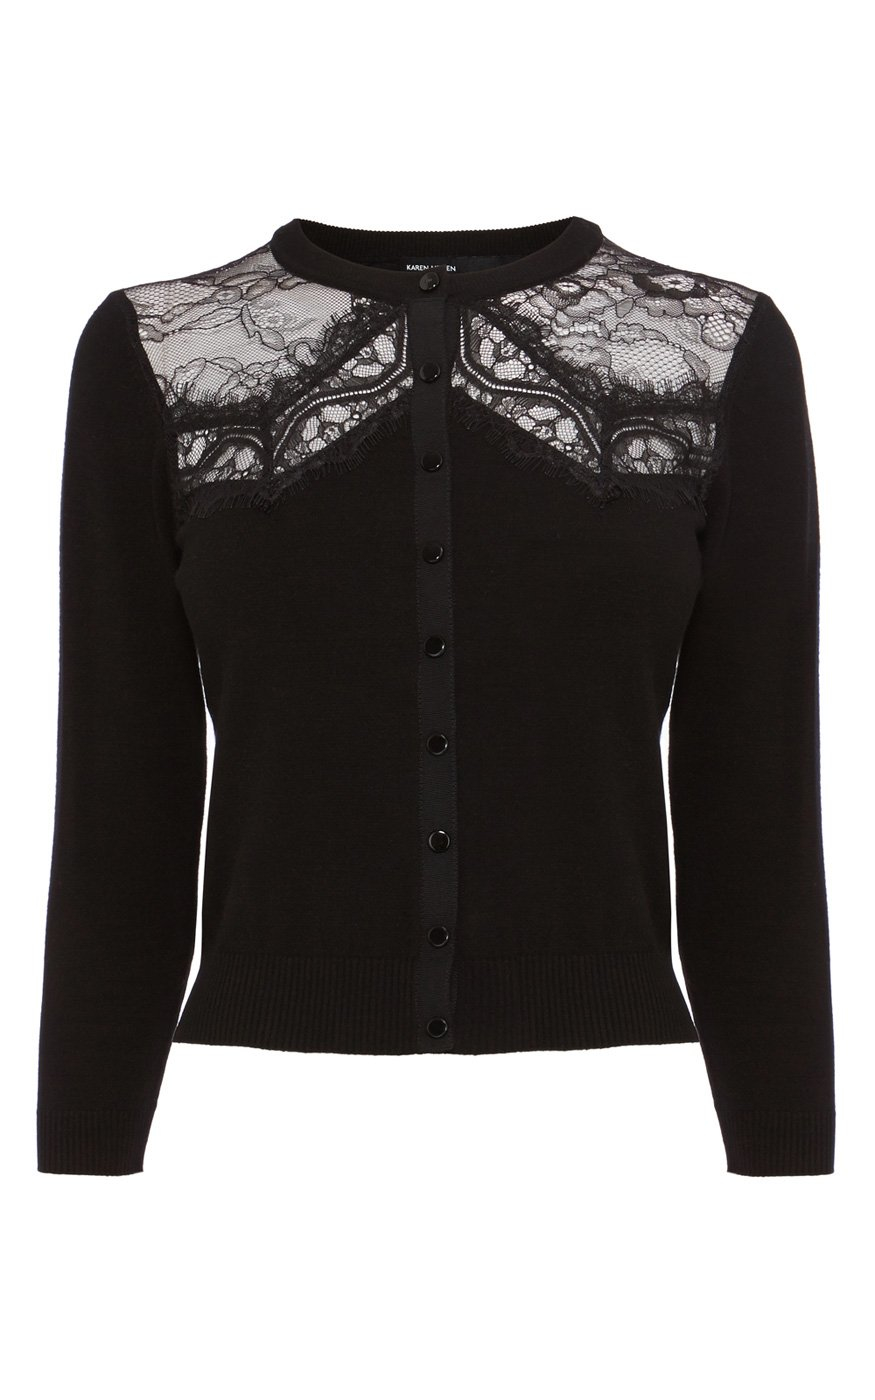 Karen millen Lace Panel Cardigan in Black | Lyst